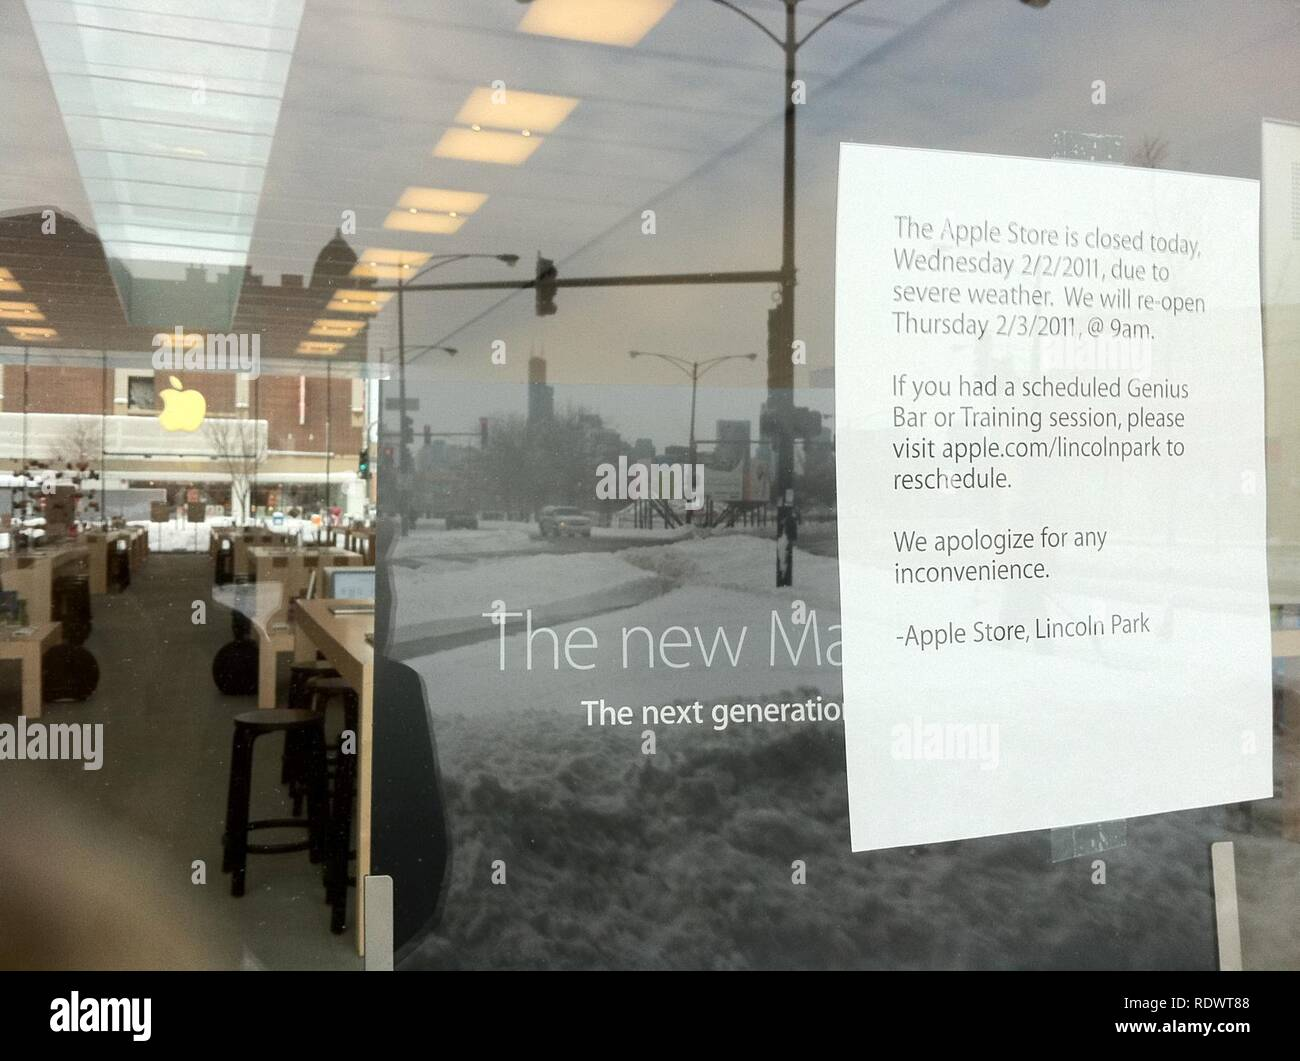 Apple Store Closed during Storm Feb 2 2011. - Stock Image